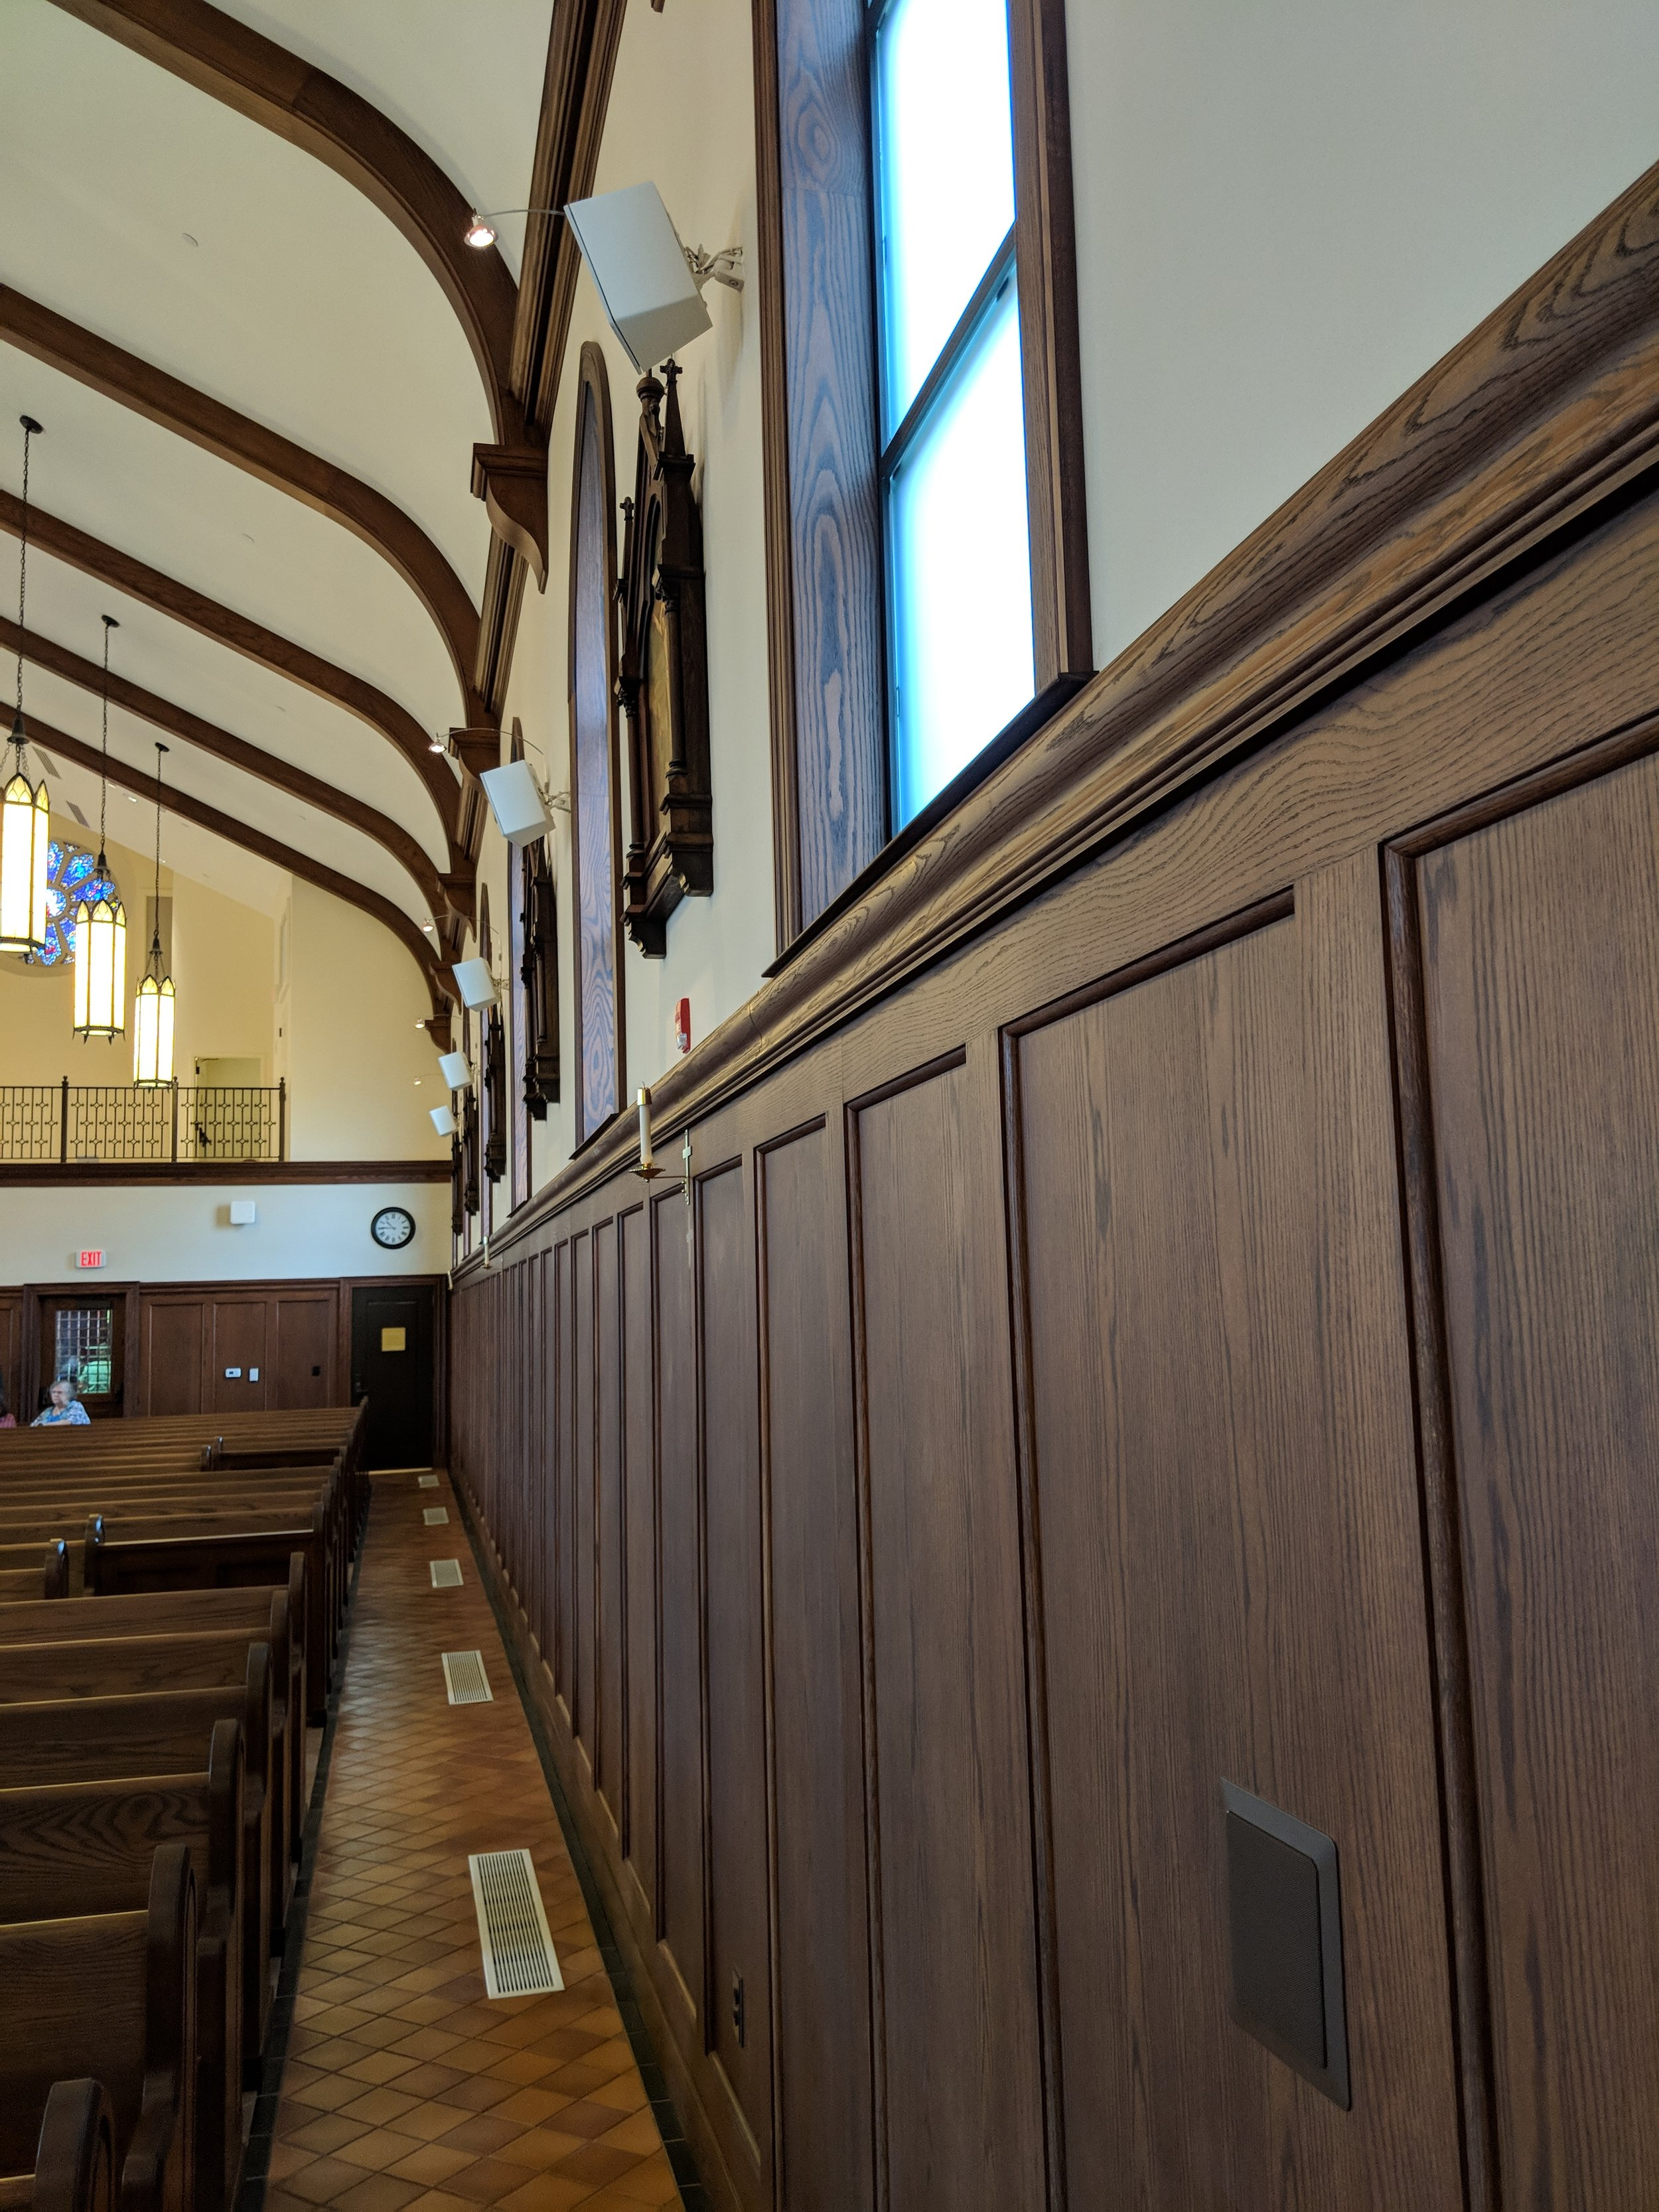 CAMM DT-200 speakers provide audio coverage in the nave. A DT-1 in-wall speaker is used to provide audio to the front pew.